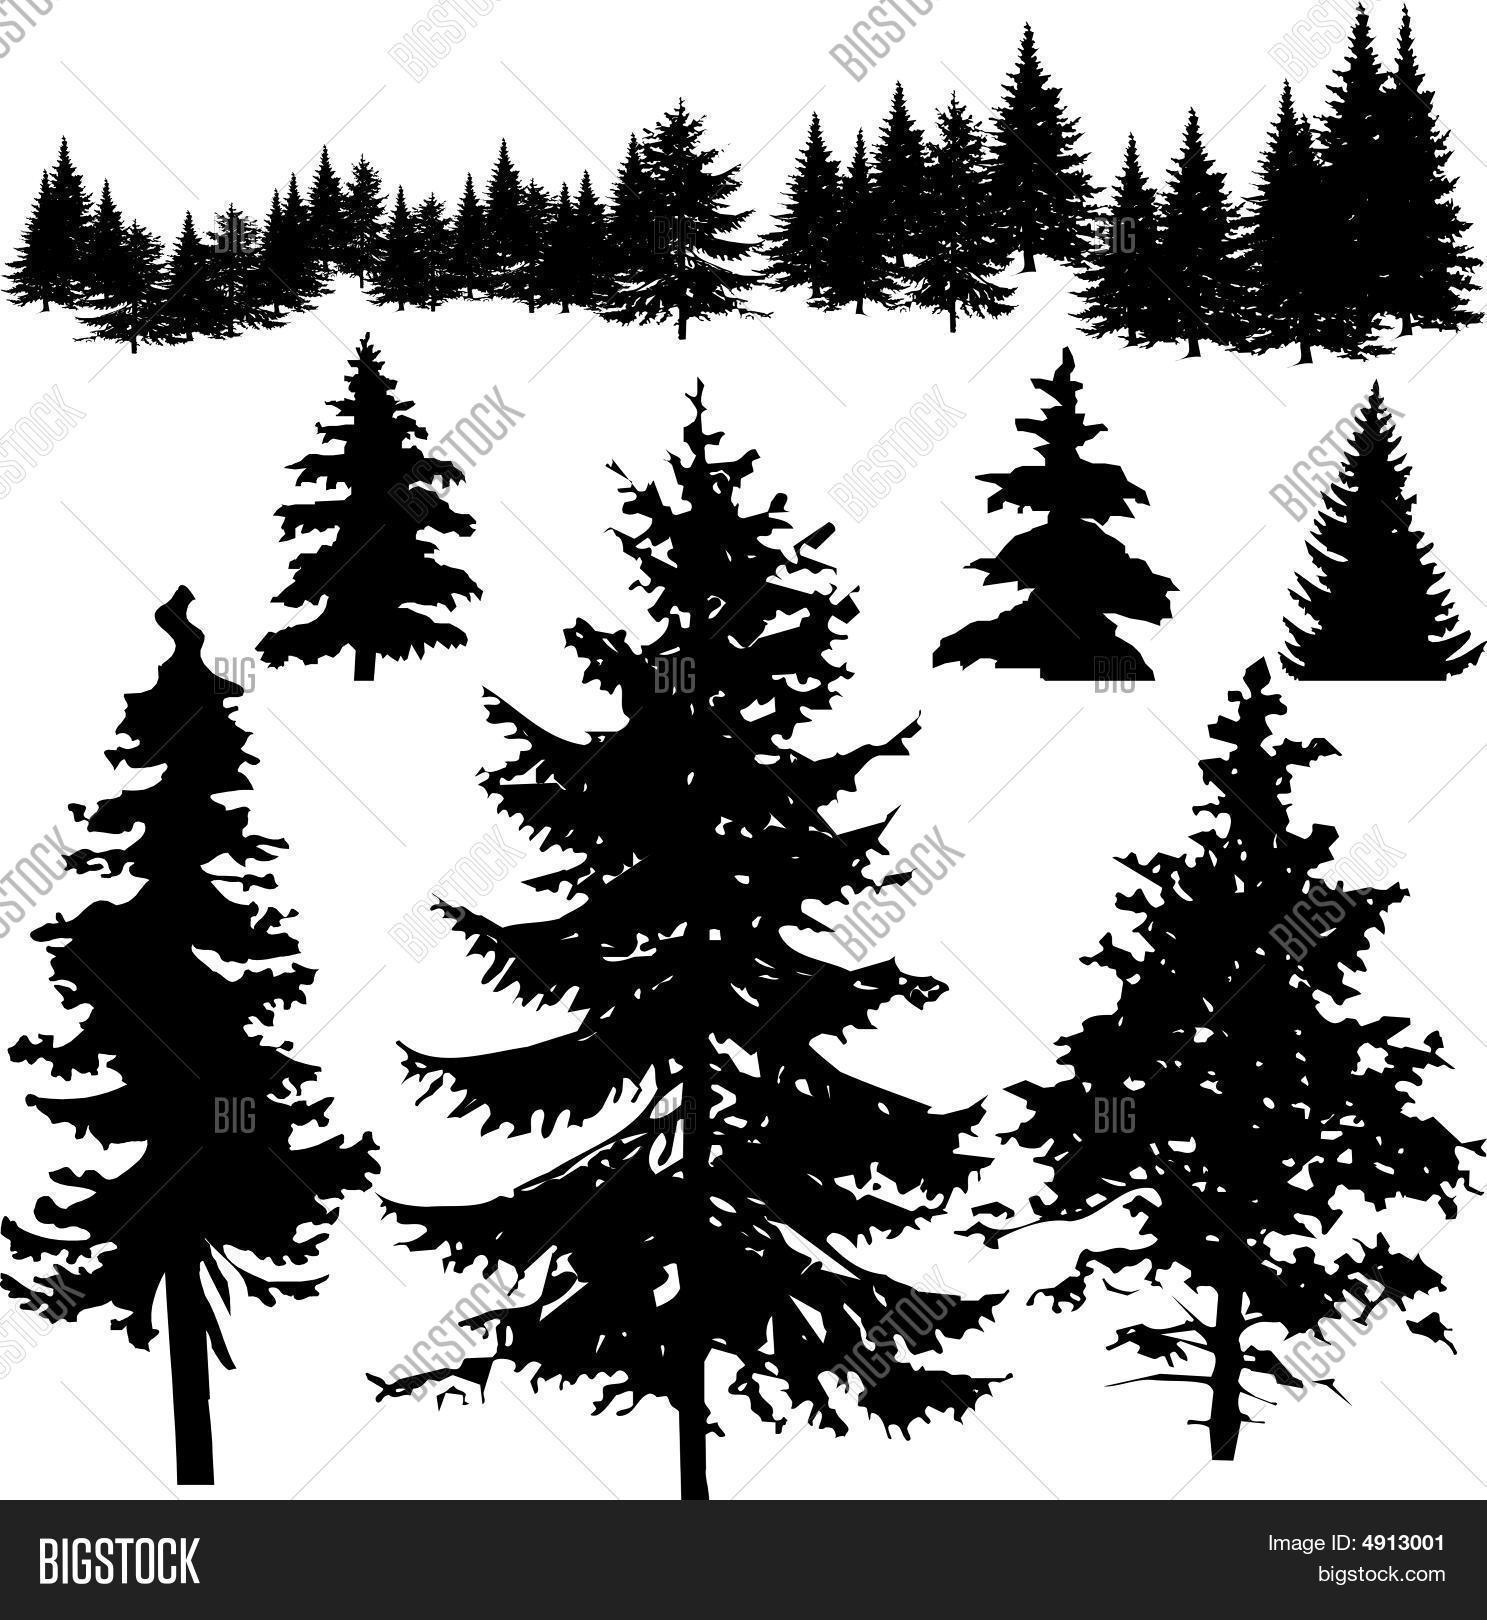 how to draw pine trees 5 pine tree silhouette drawing png transparent onlygfxcom how draw trees pine to